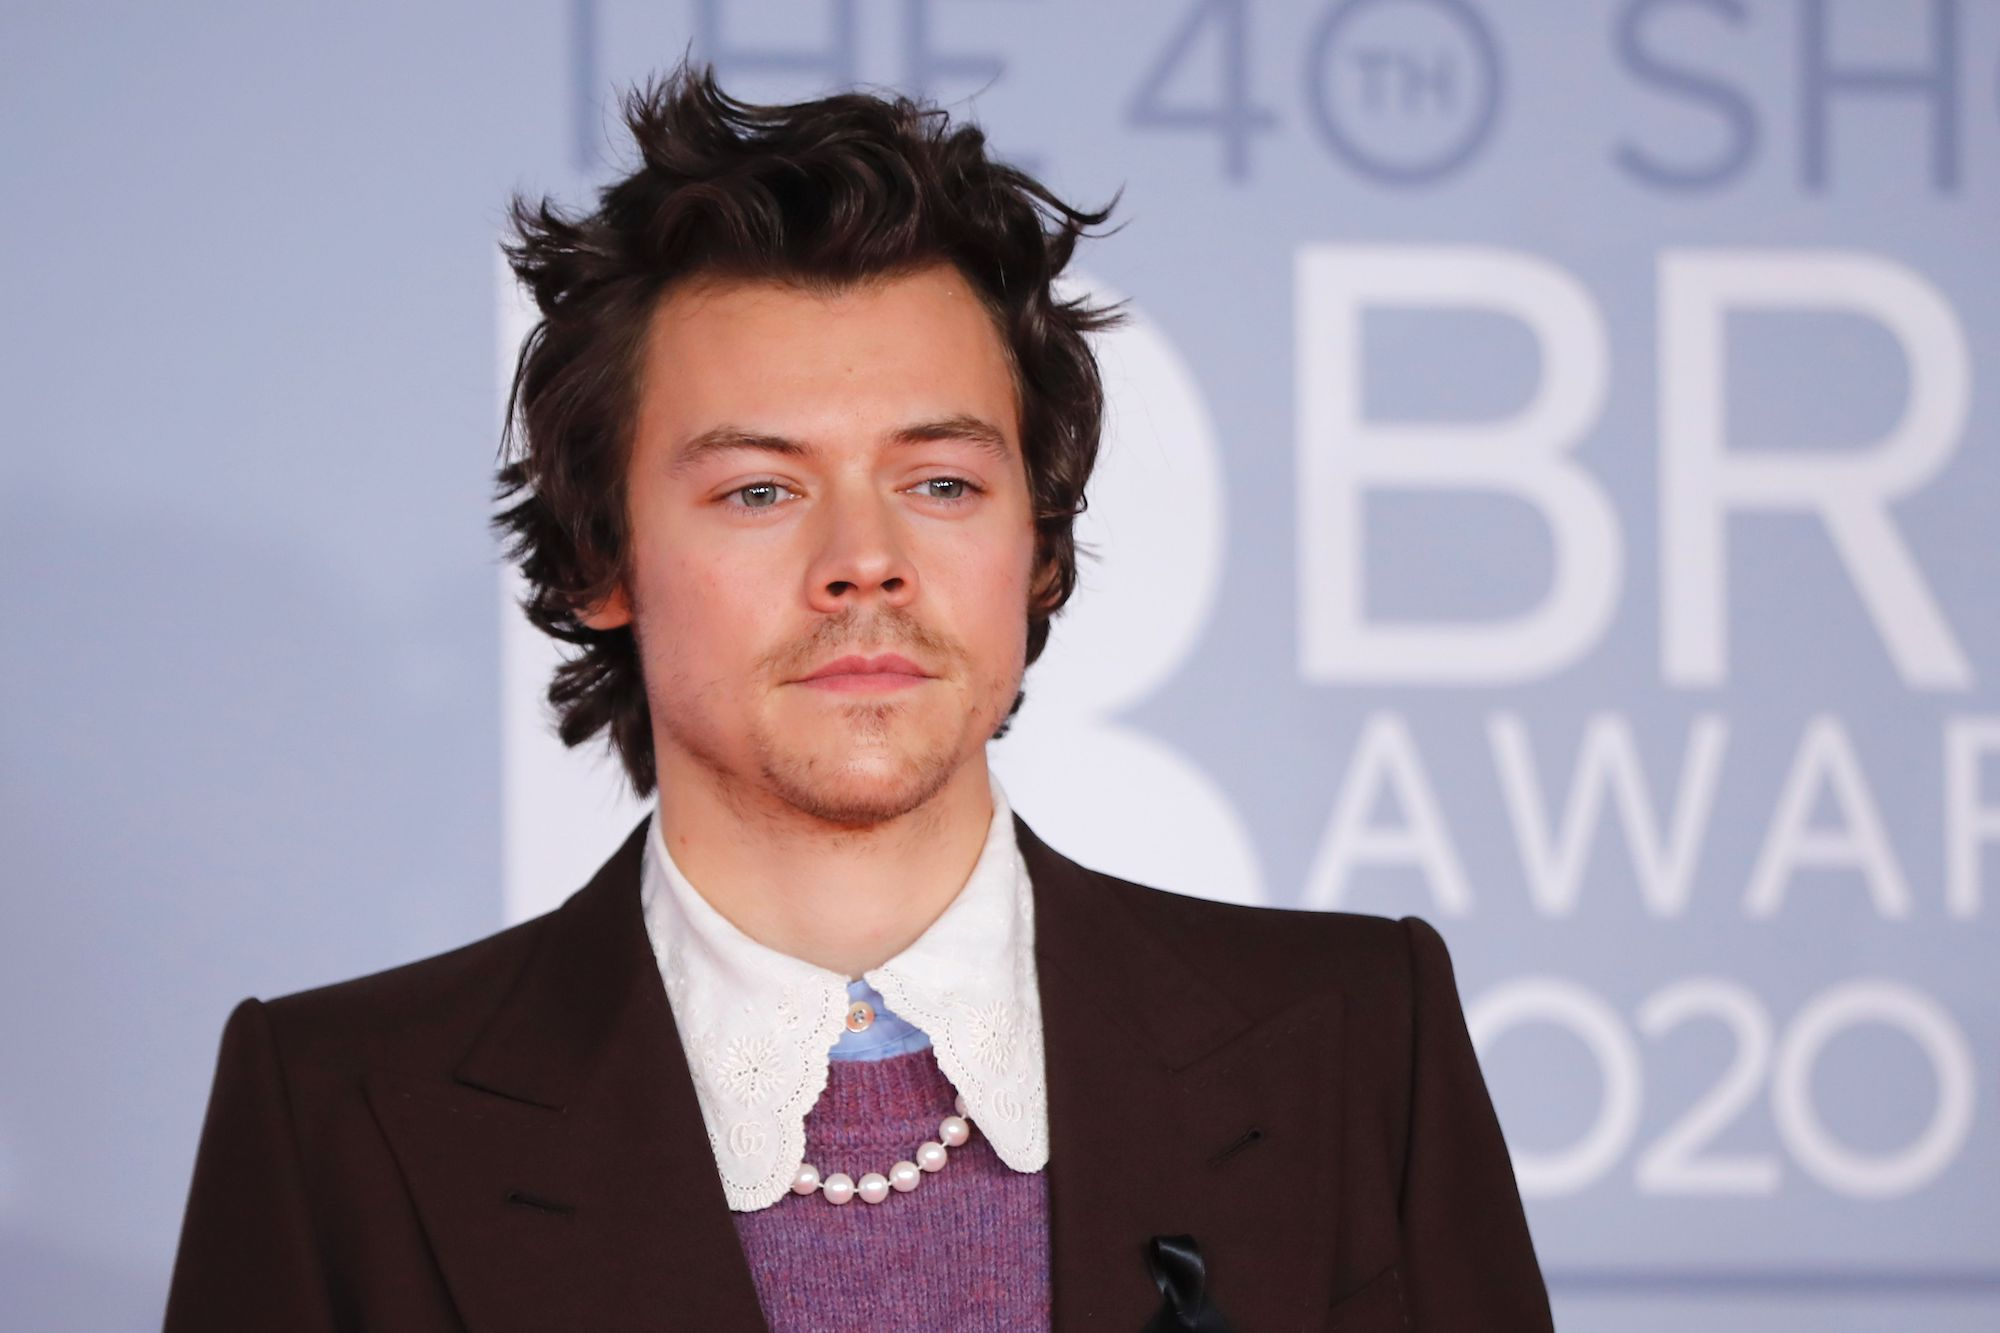 Harry Styles on the red carpet on arrival for the BRIT Awards 2020 in London on February 18, 2020.